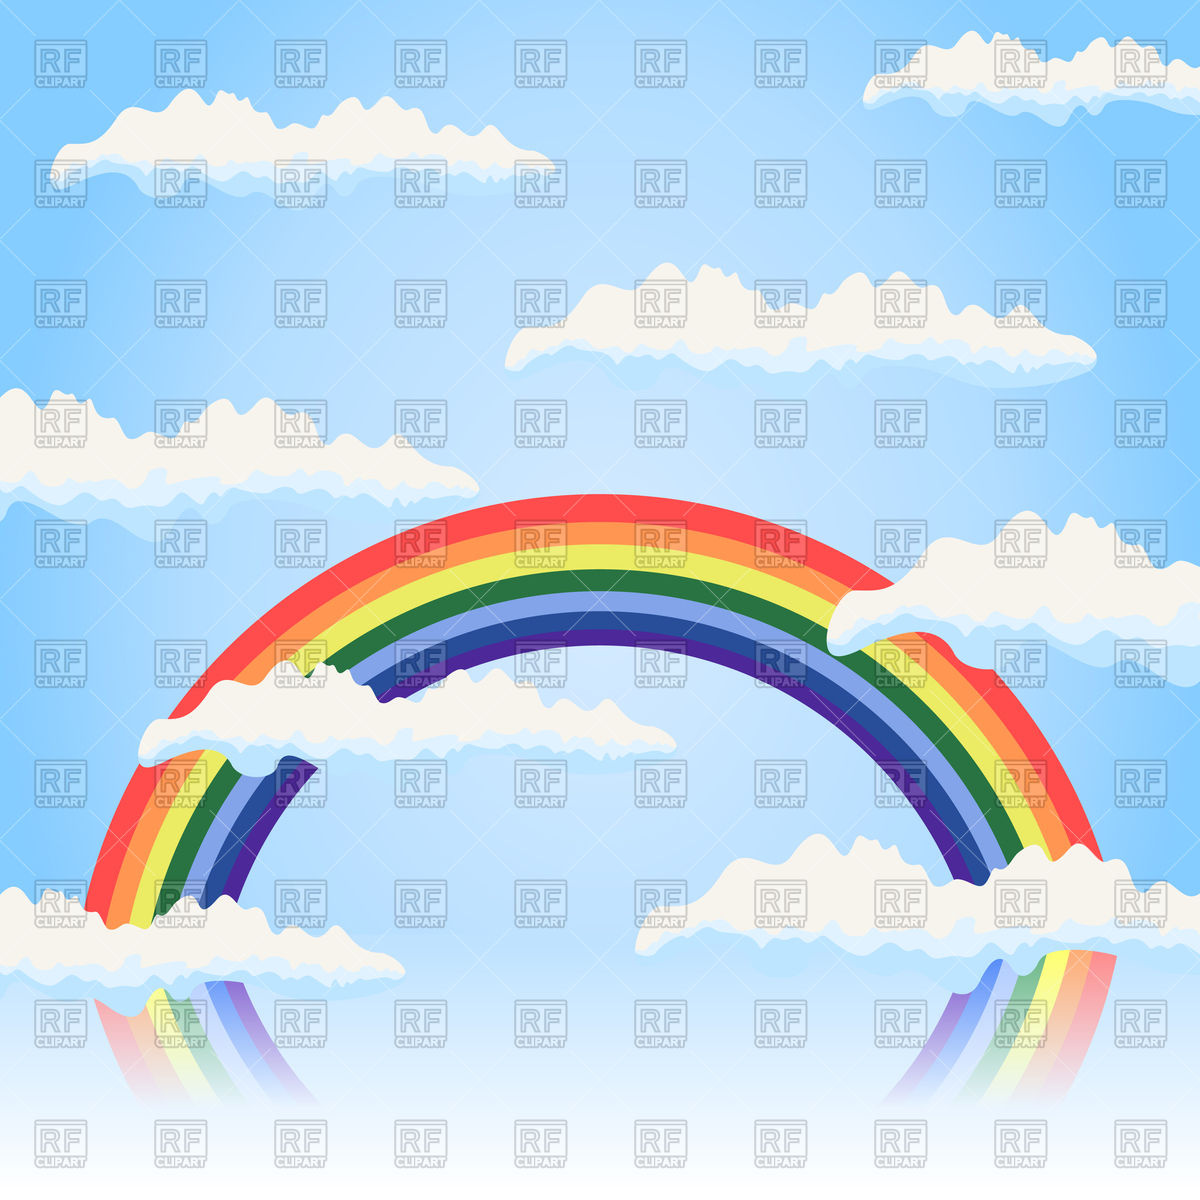 Big blue sky clipart 20 free Cliparts | Download images on ...